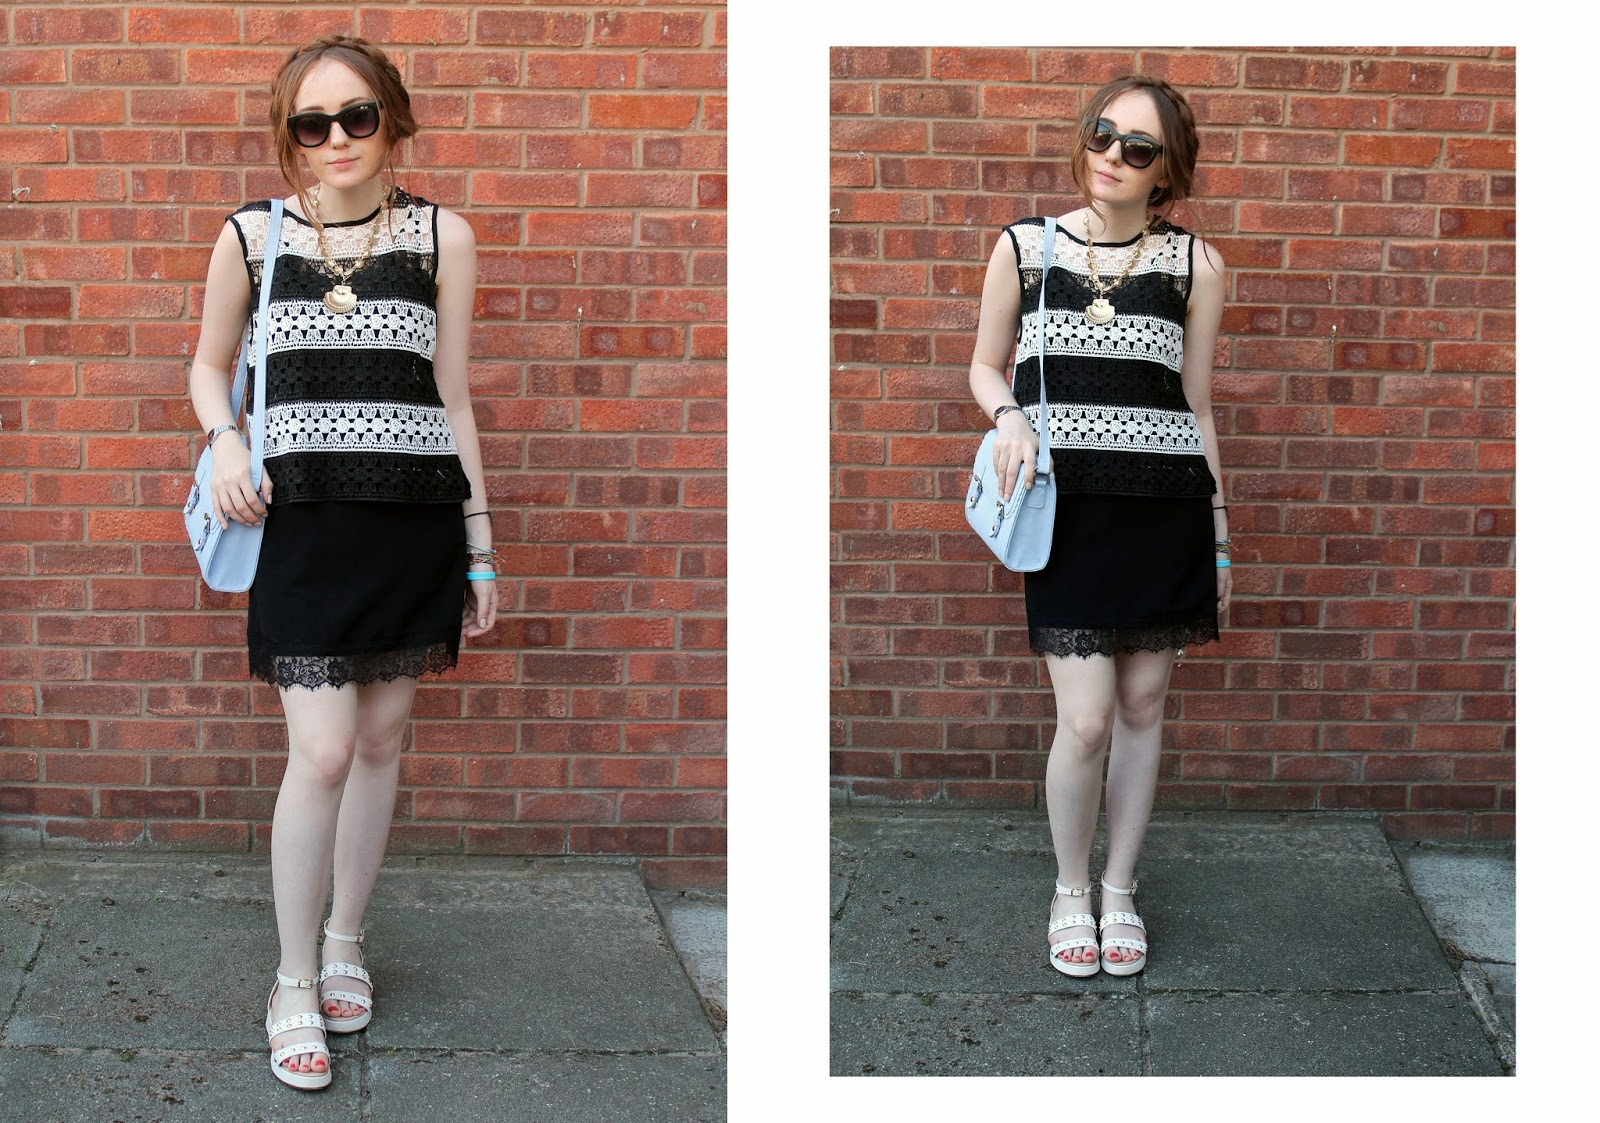 monochrome crochet top worn layered over a black slip dress with white studded sandals, asos pastel satchel and primark sunglasses